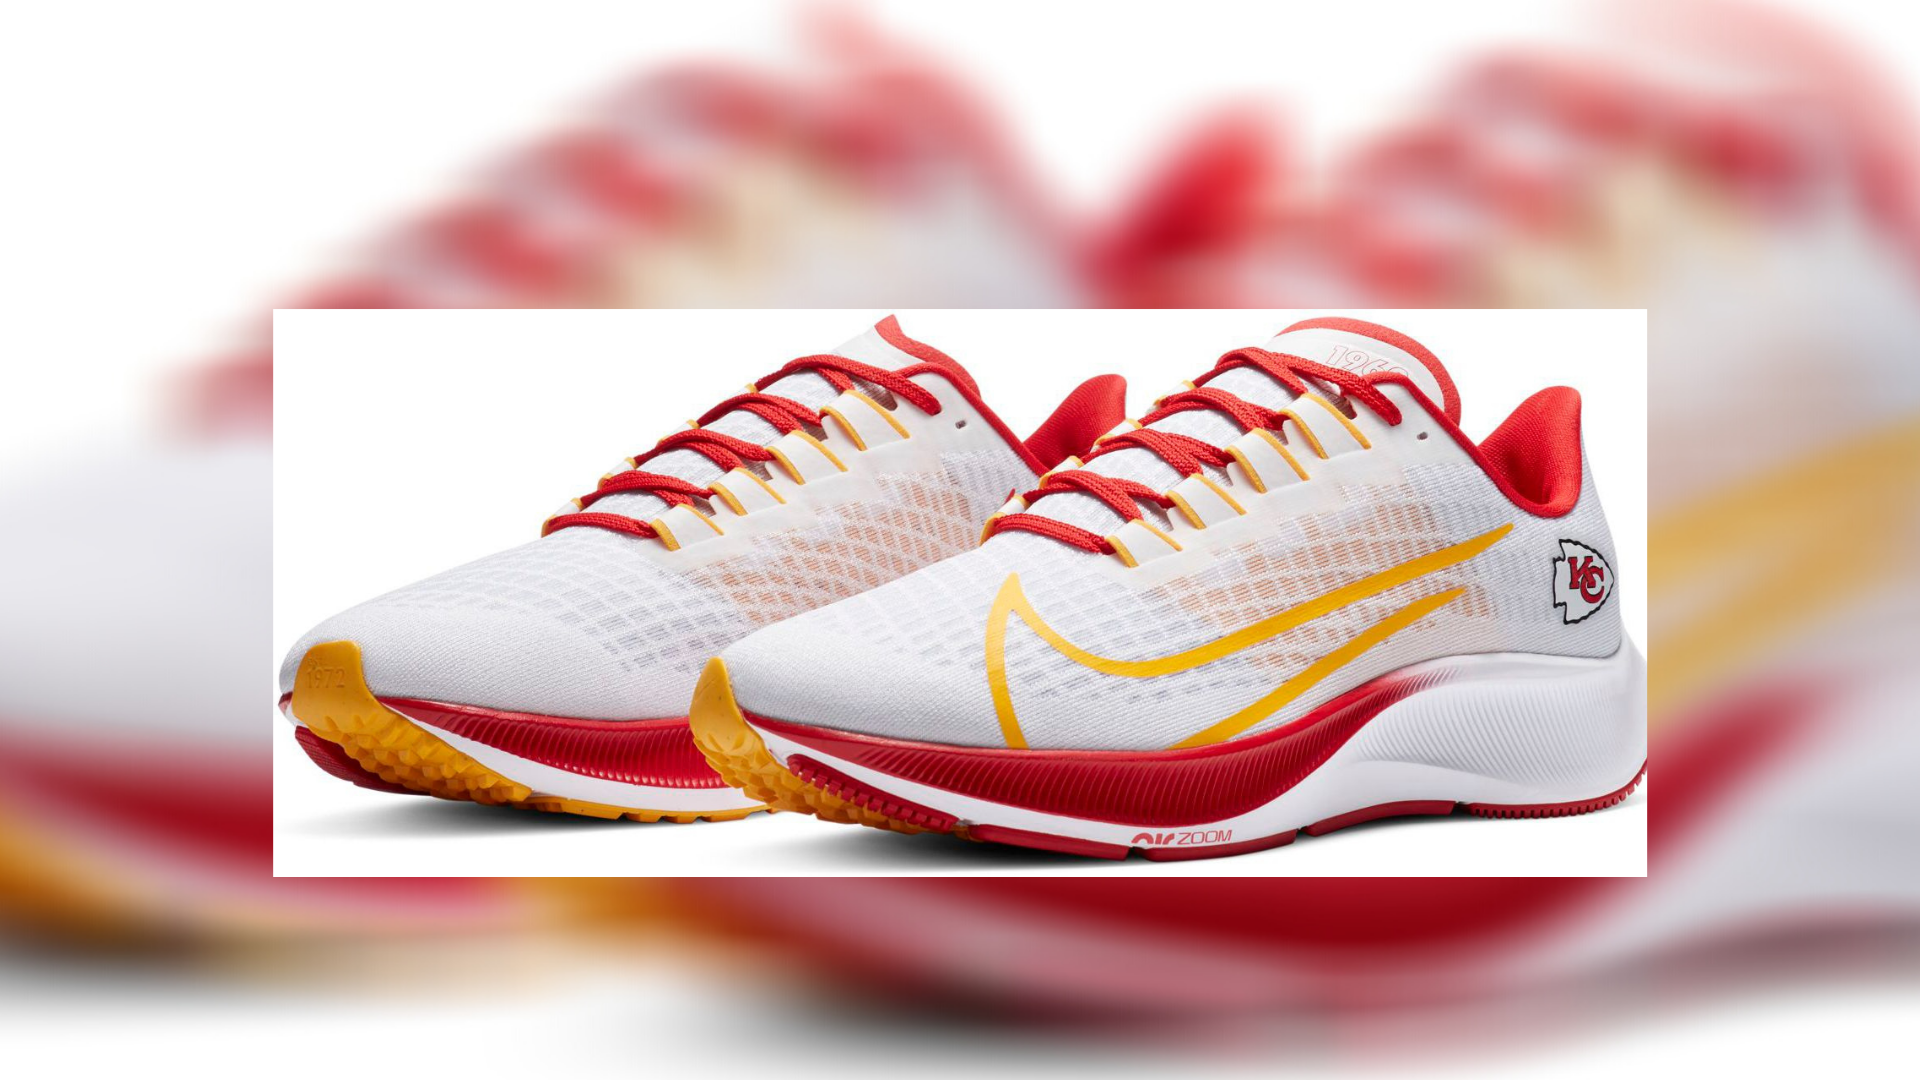 limited edition Chiefs shoes